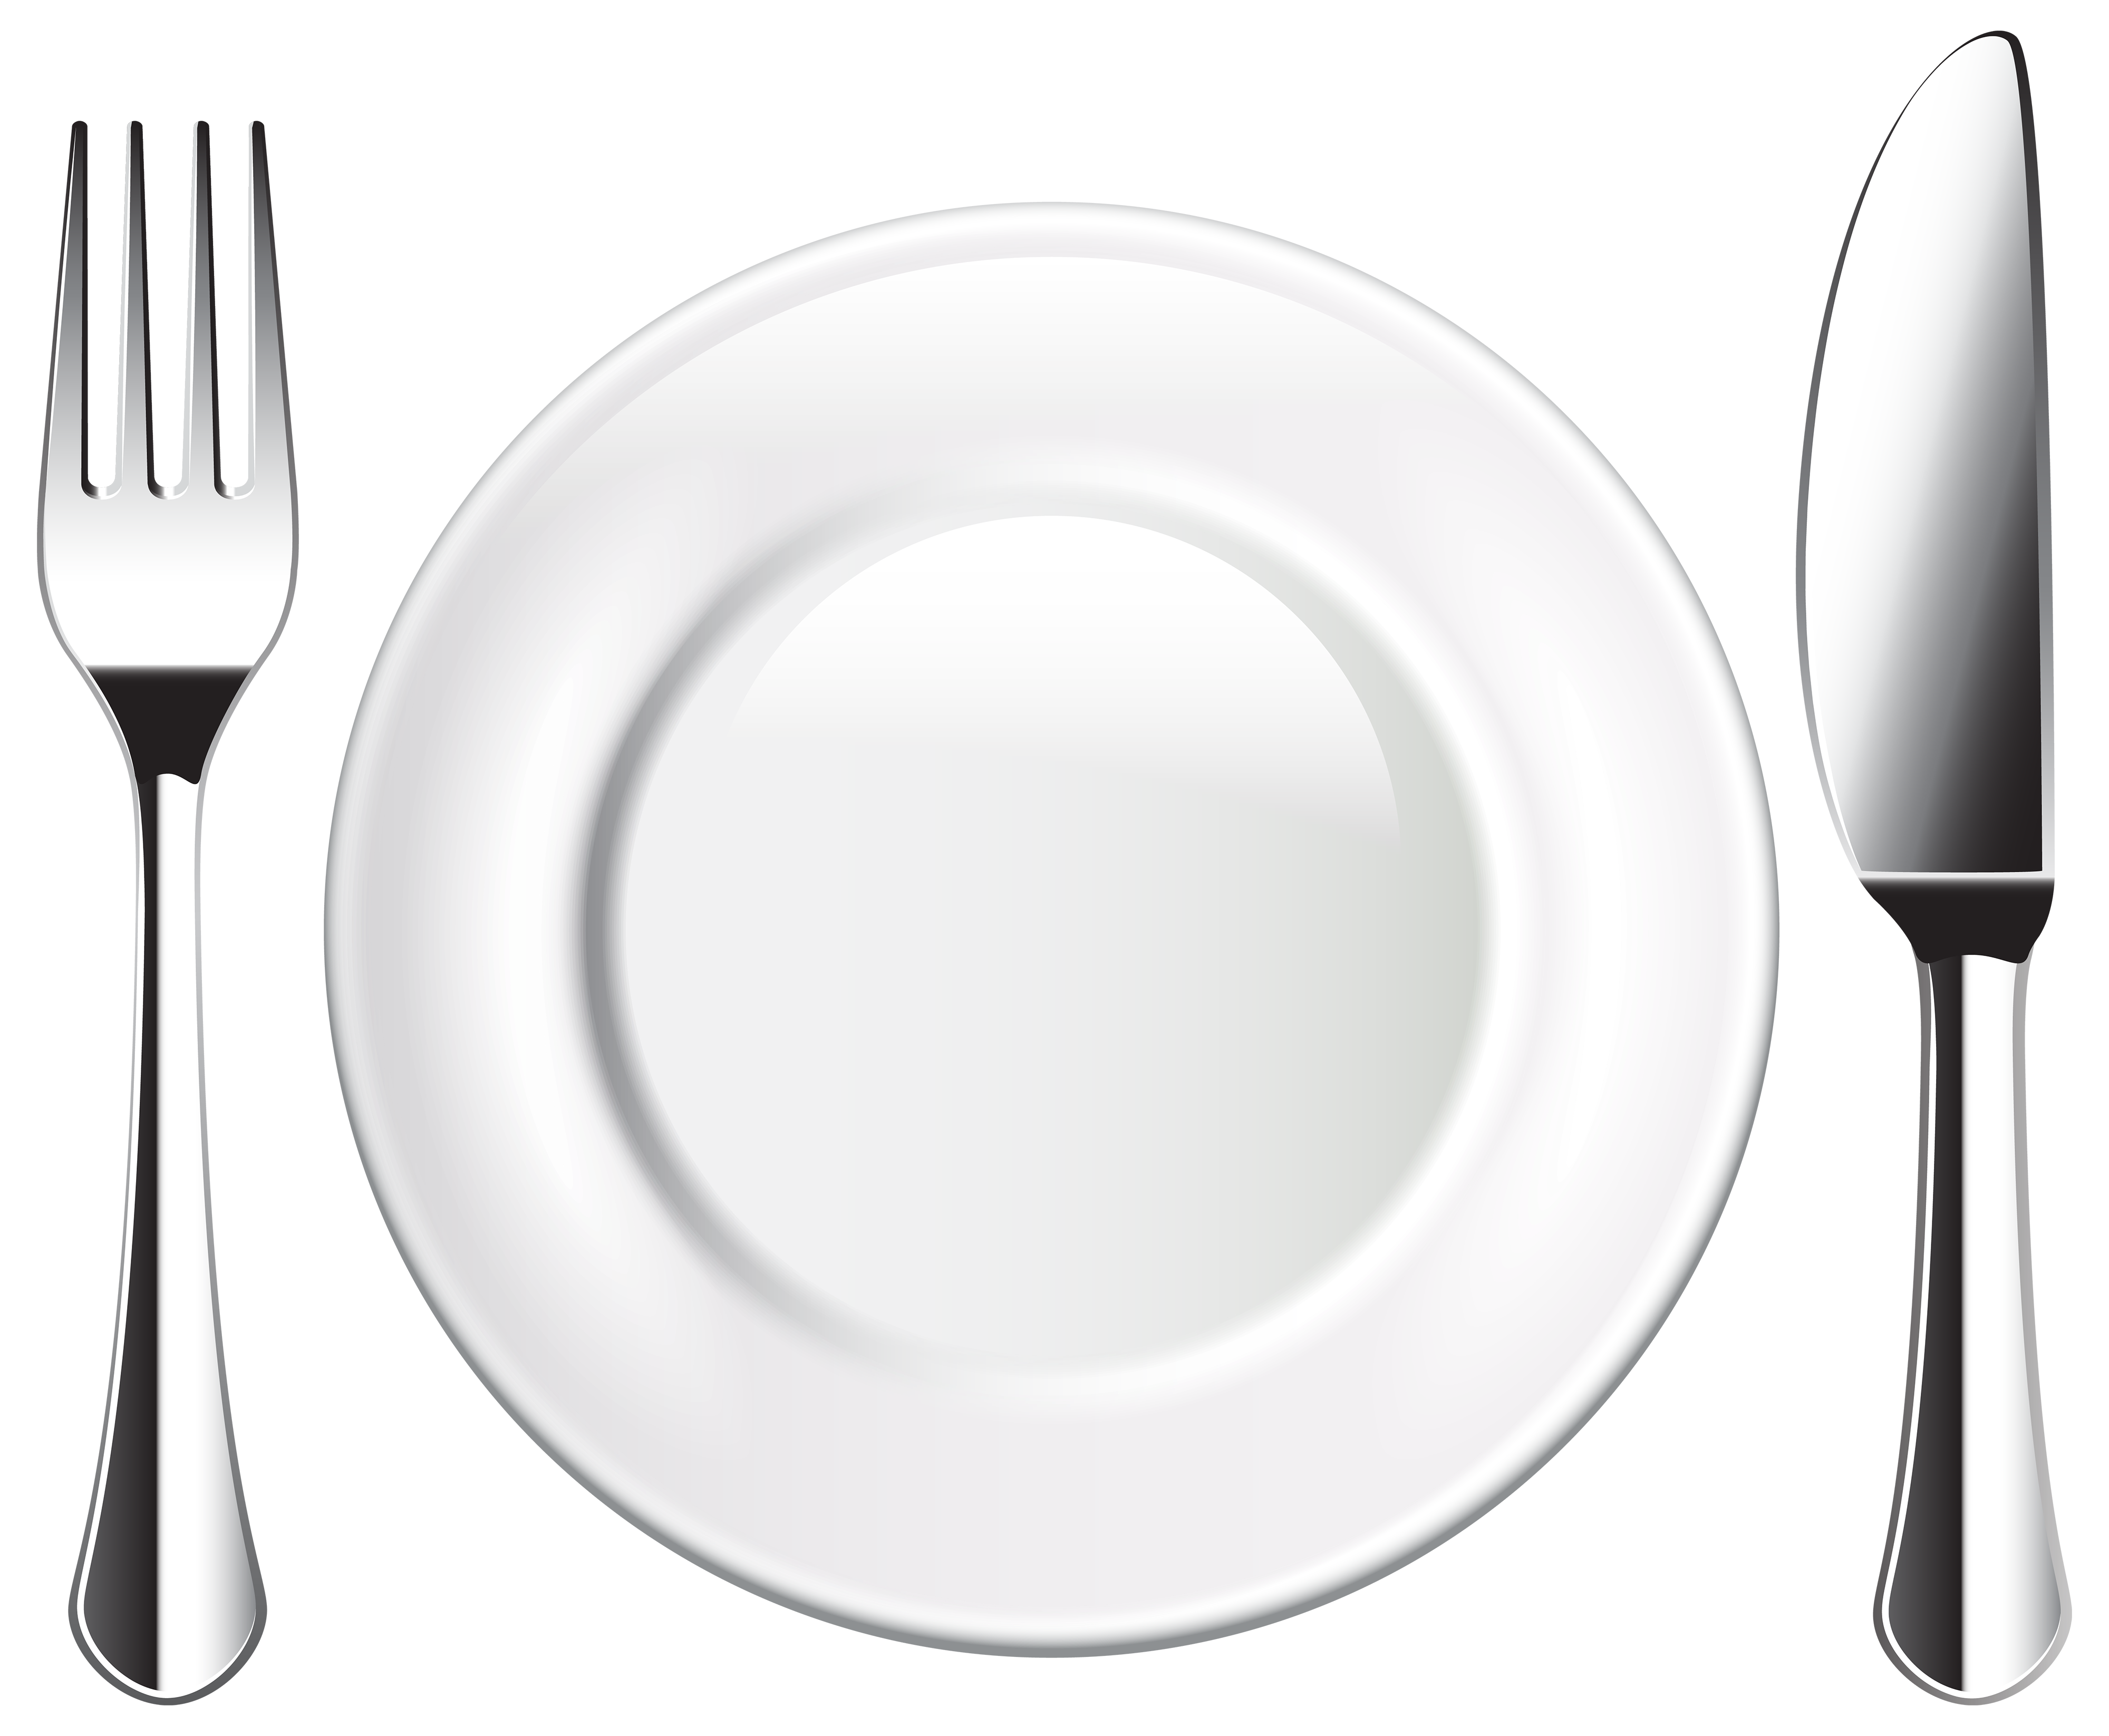 Fork spoon house clipart graphic library library Plate Knife and Fork PNG Clipart - Best WEB Clipart graphic library library